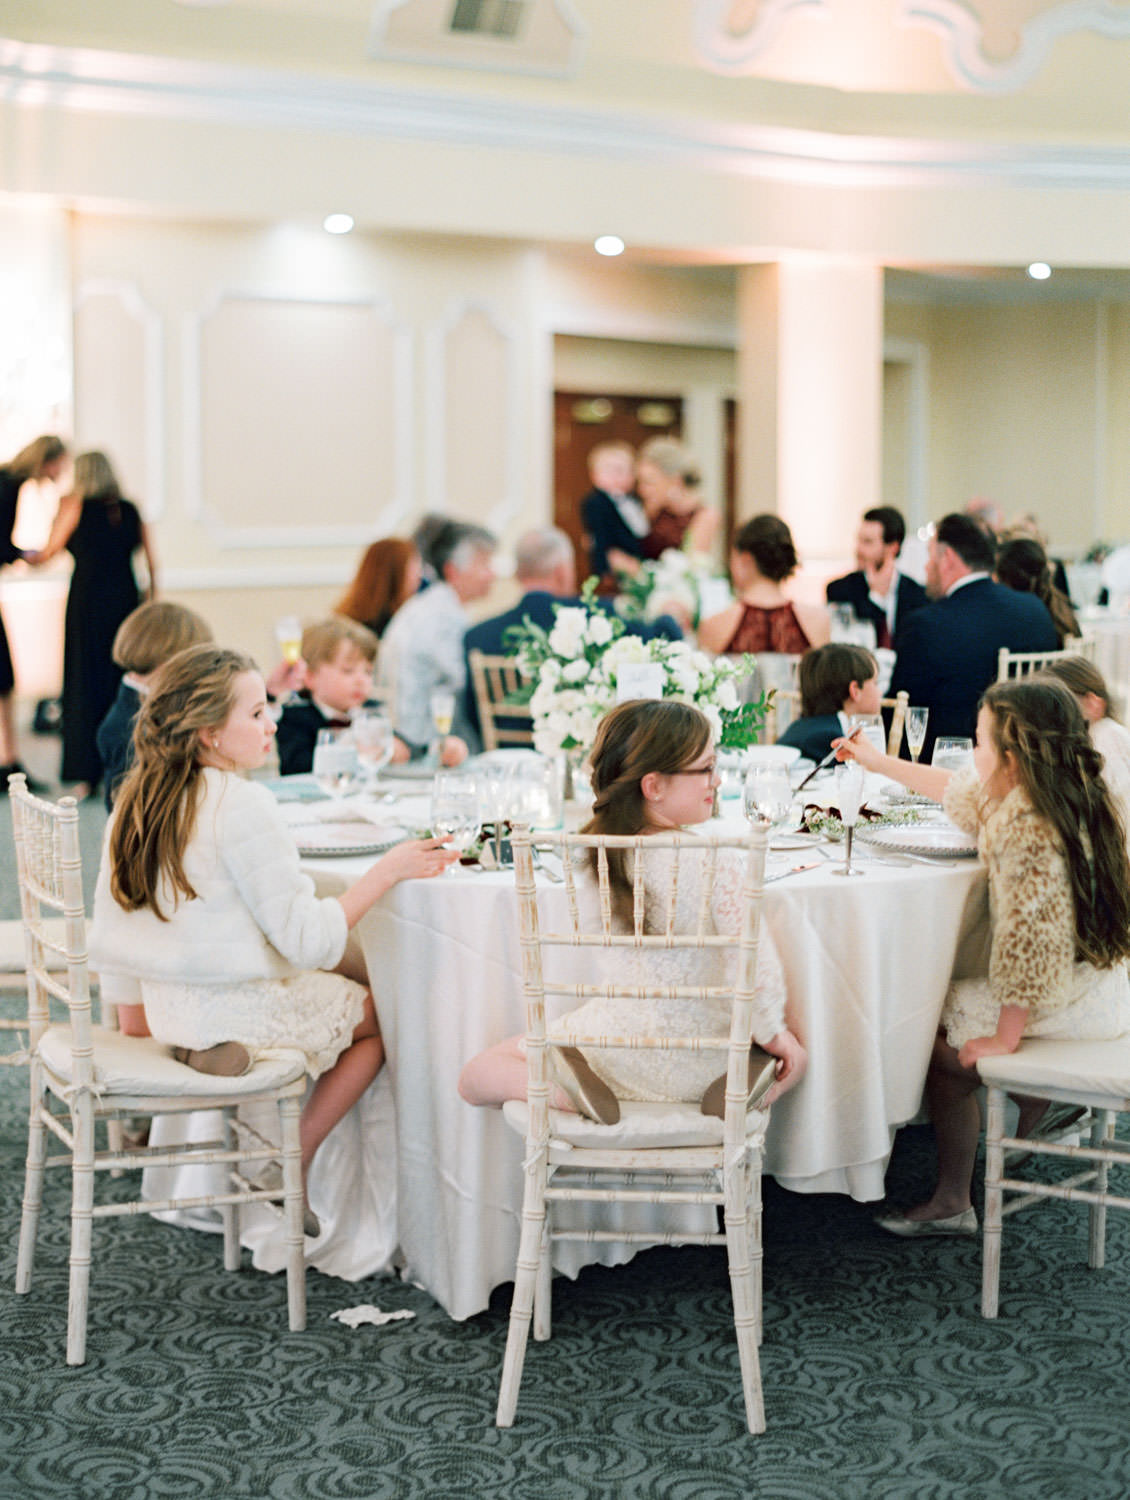 Flower girl table at reception watching the first dance. Hotel Del Wedding reception by Cavin Elizabeth.